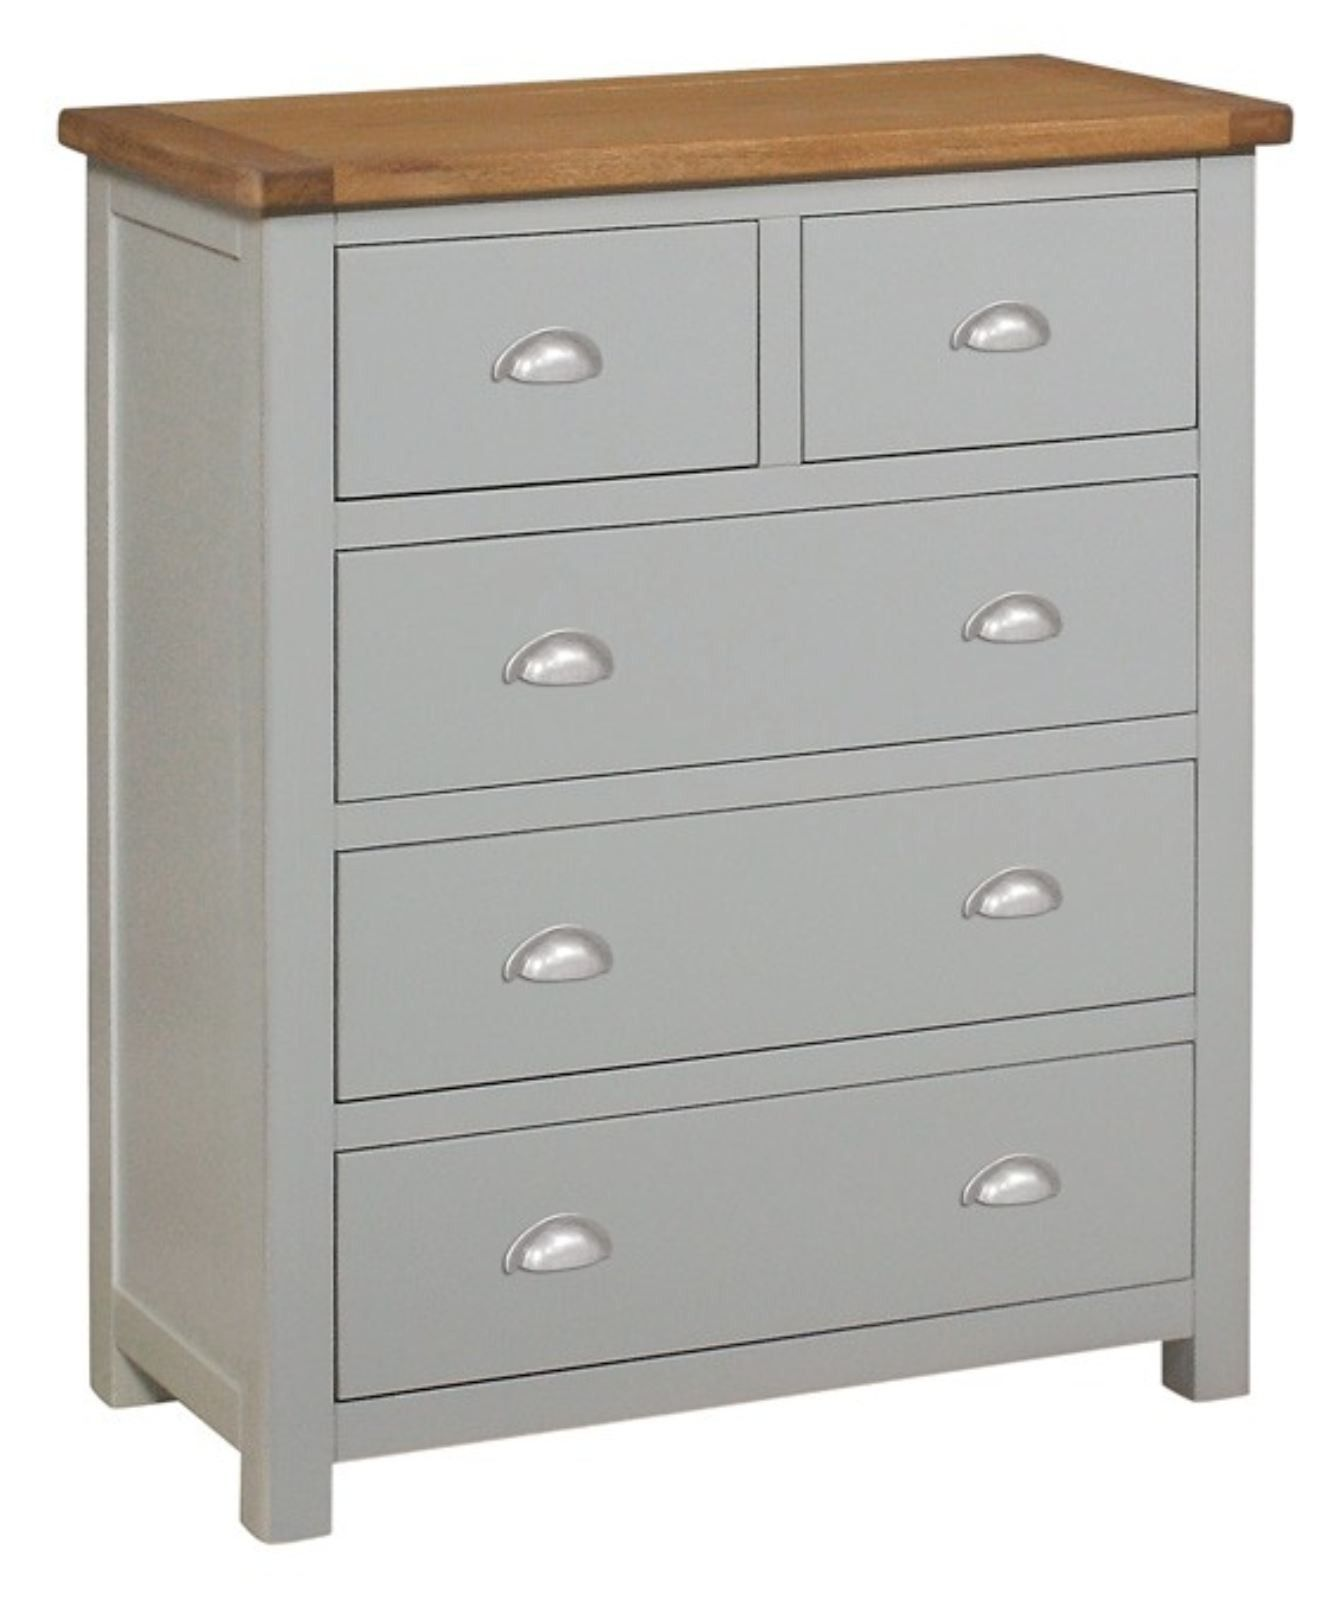 This Grey Painted 2 Over 3 Chest Of Drawers Is From Our Brand New Provence Bedroom Collection